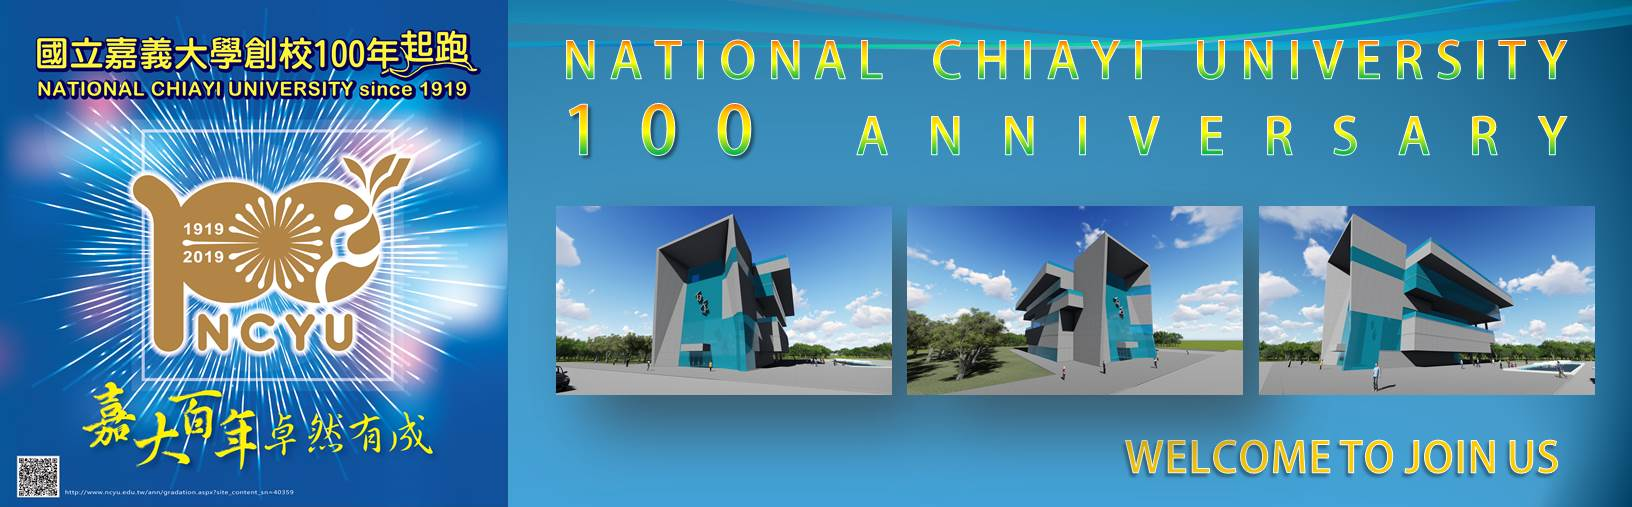 NATIONAL CHIAYI UNIVERSITY 100th ANNIVERSARY